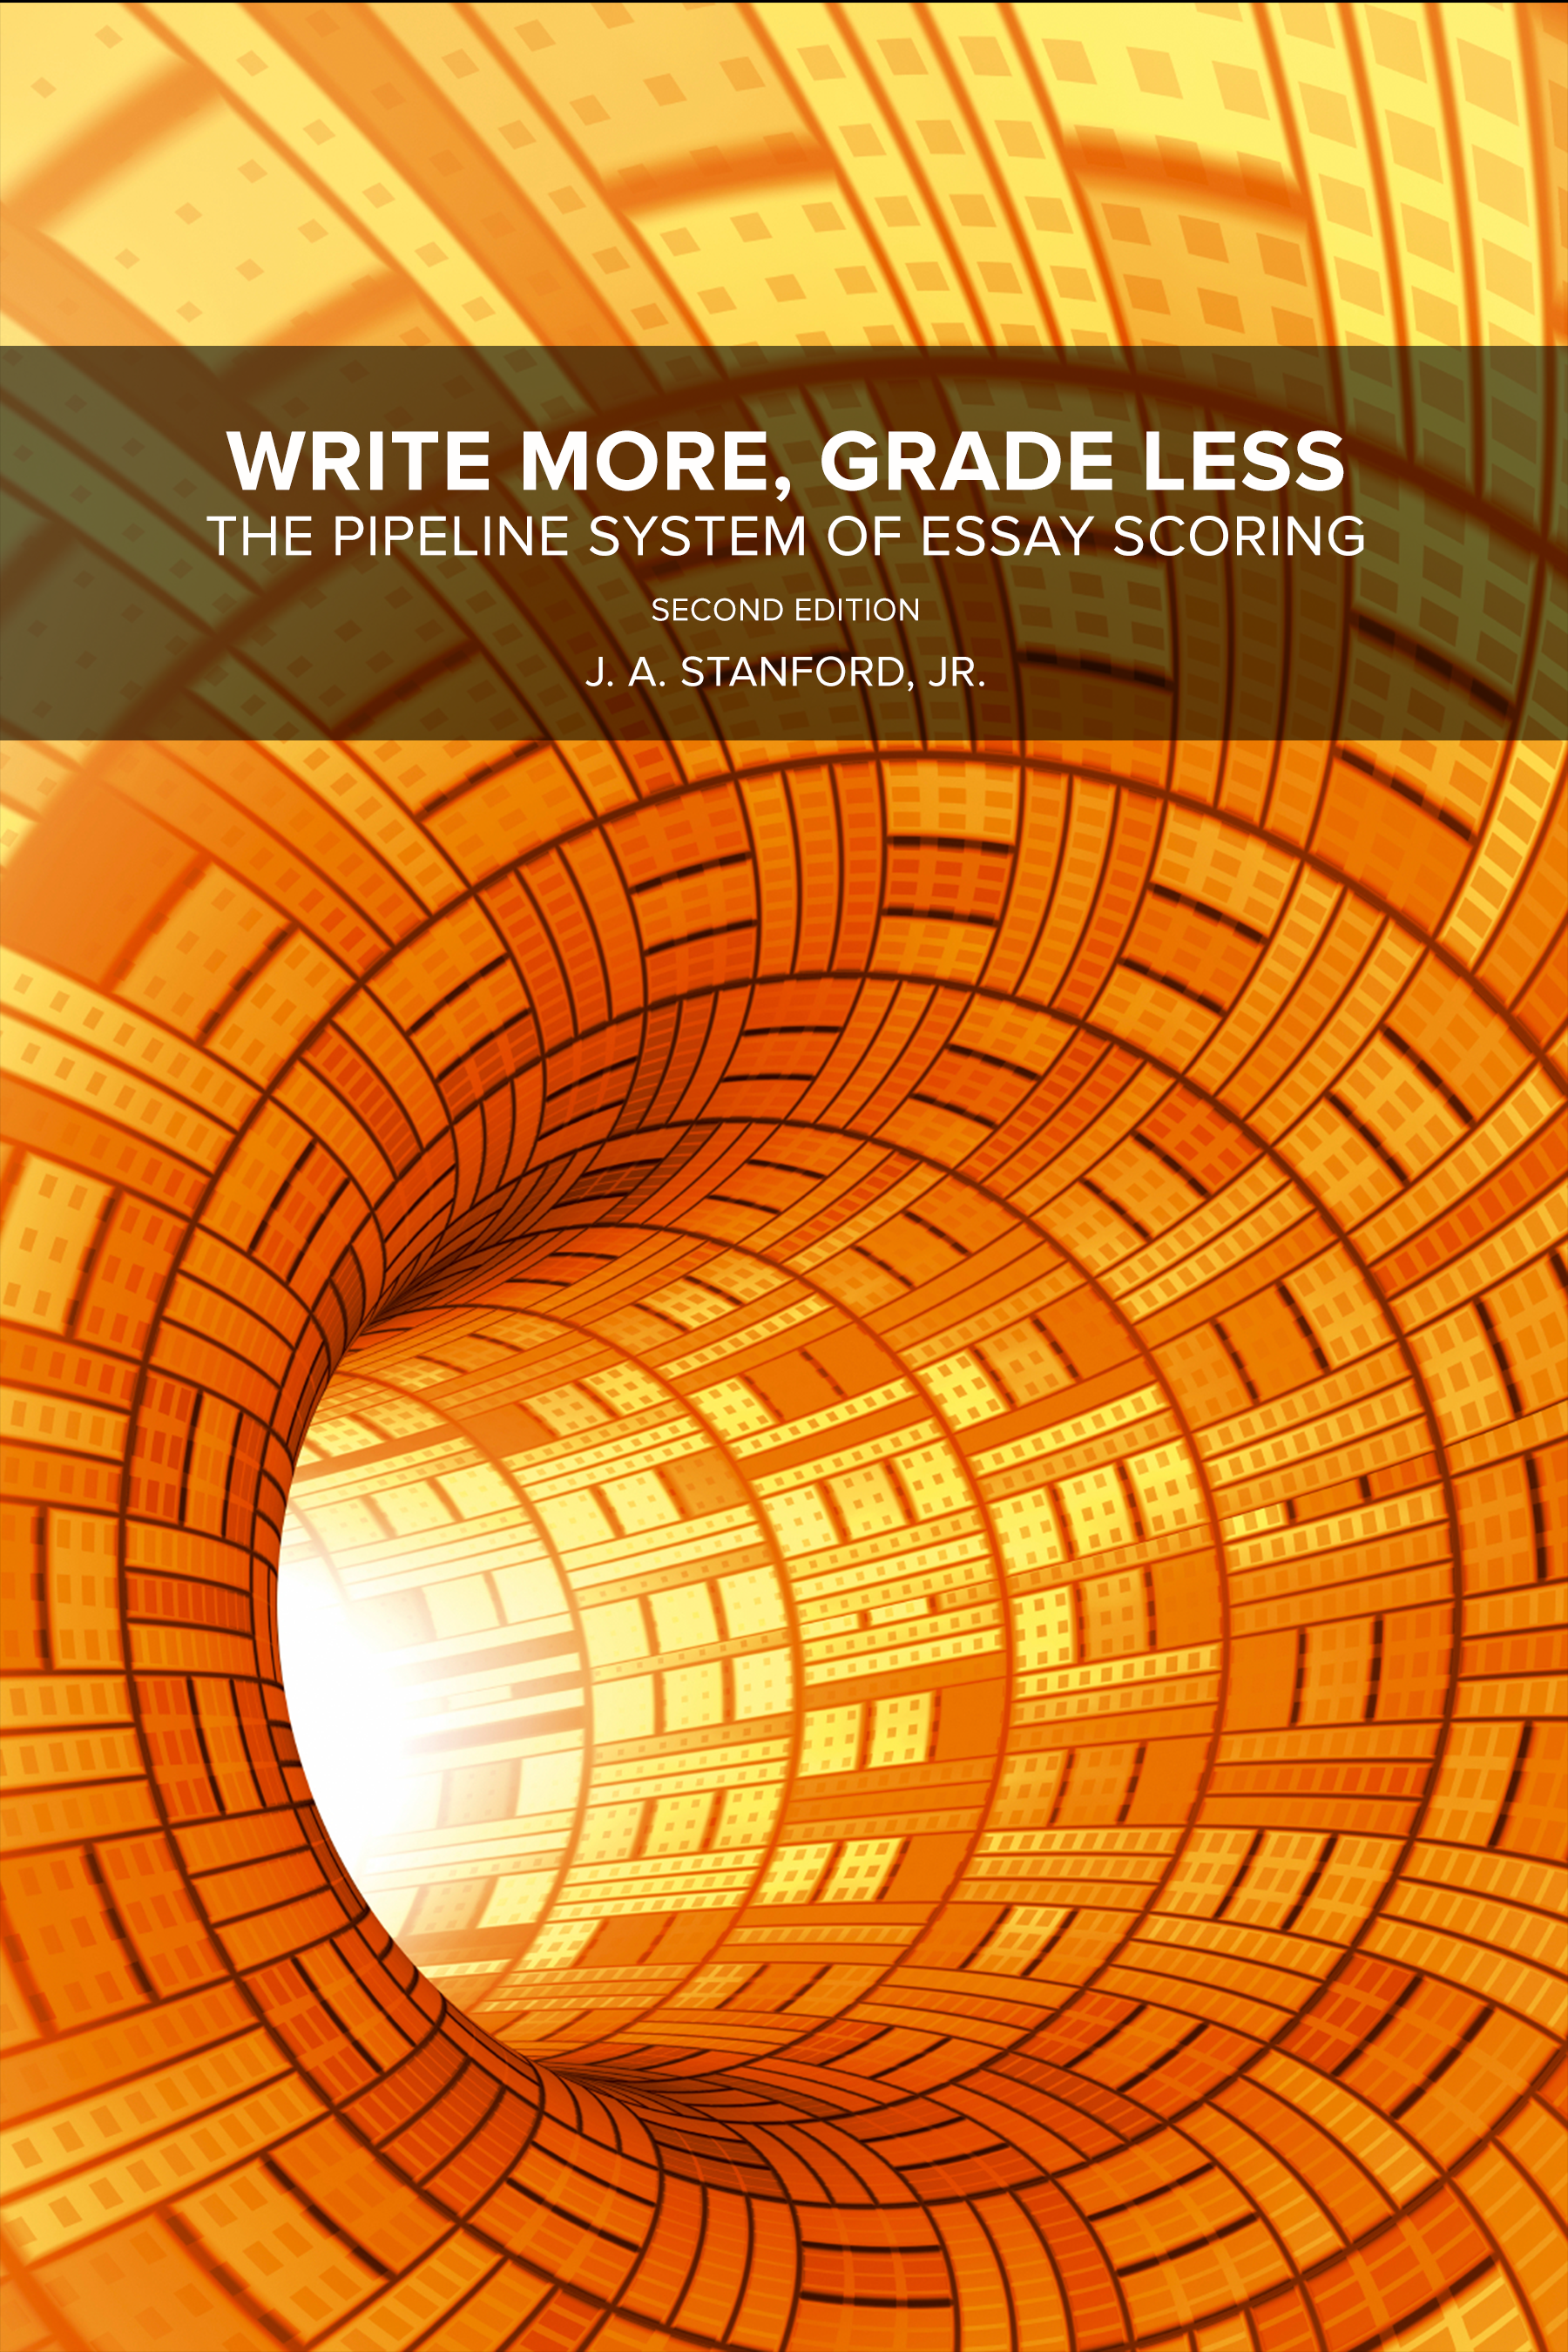 WRITE MORE, GRADE LESS